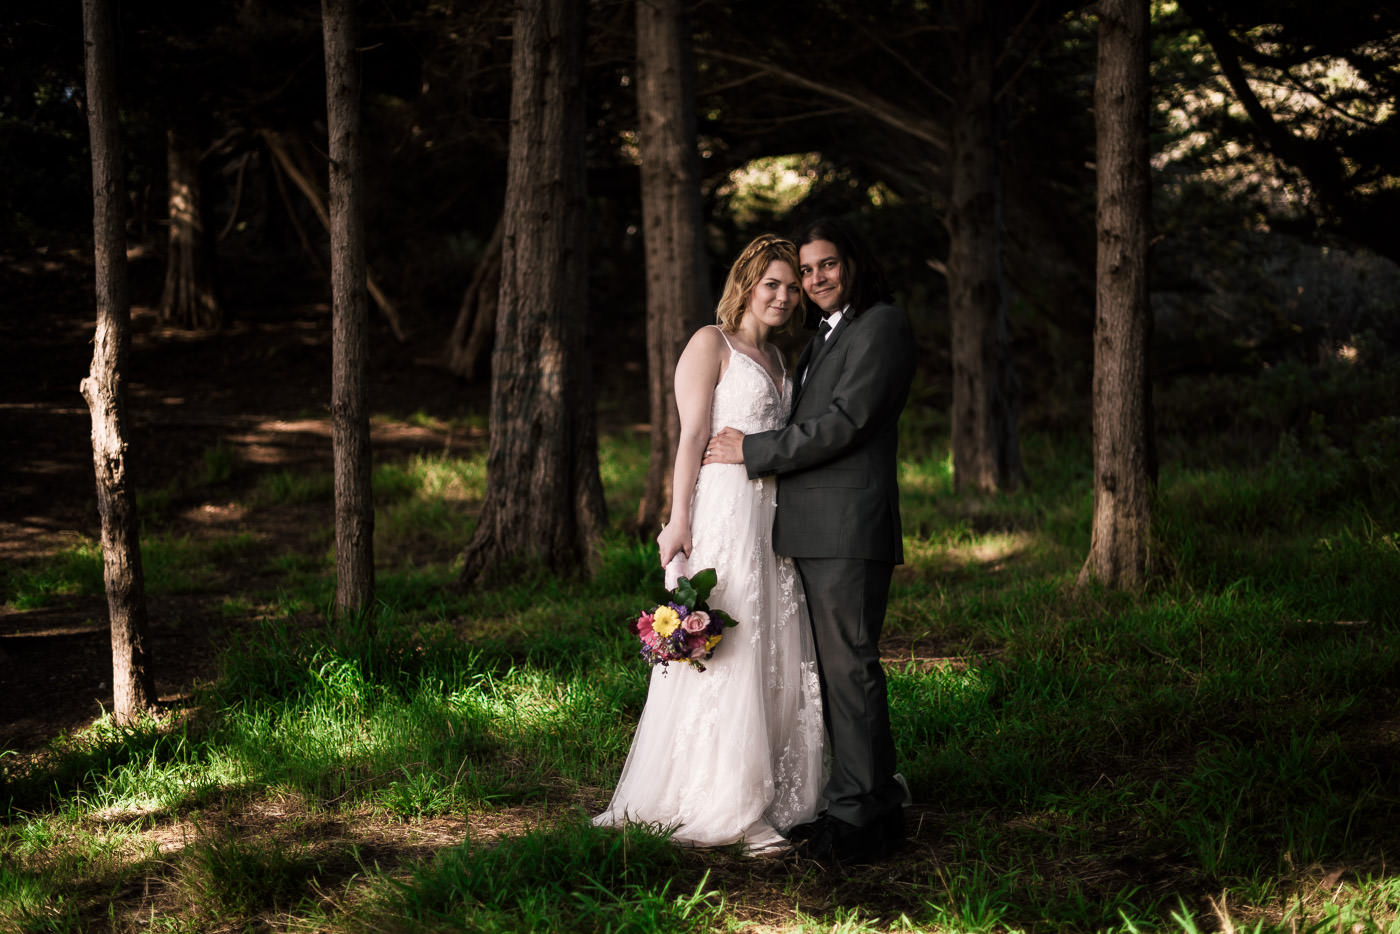 Couple smiles for the camera among the wooded coastline of Big Sur for a classic wedding photo.